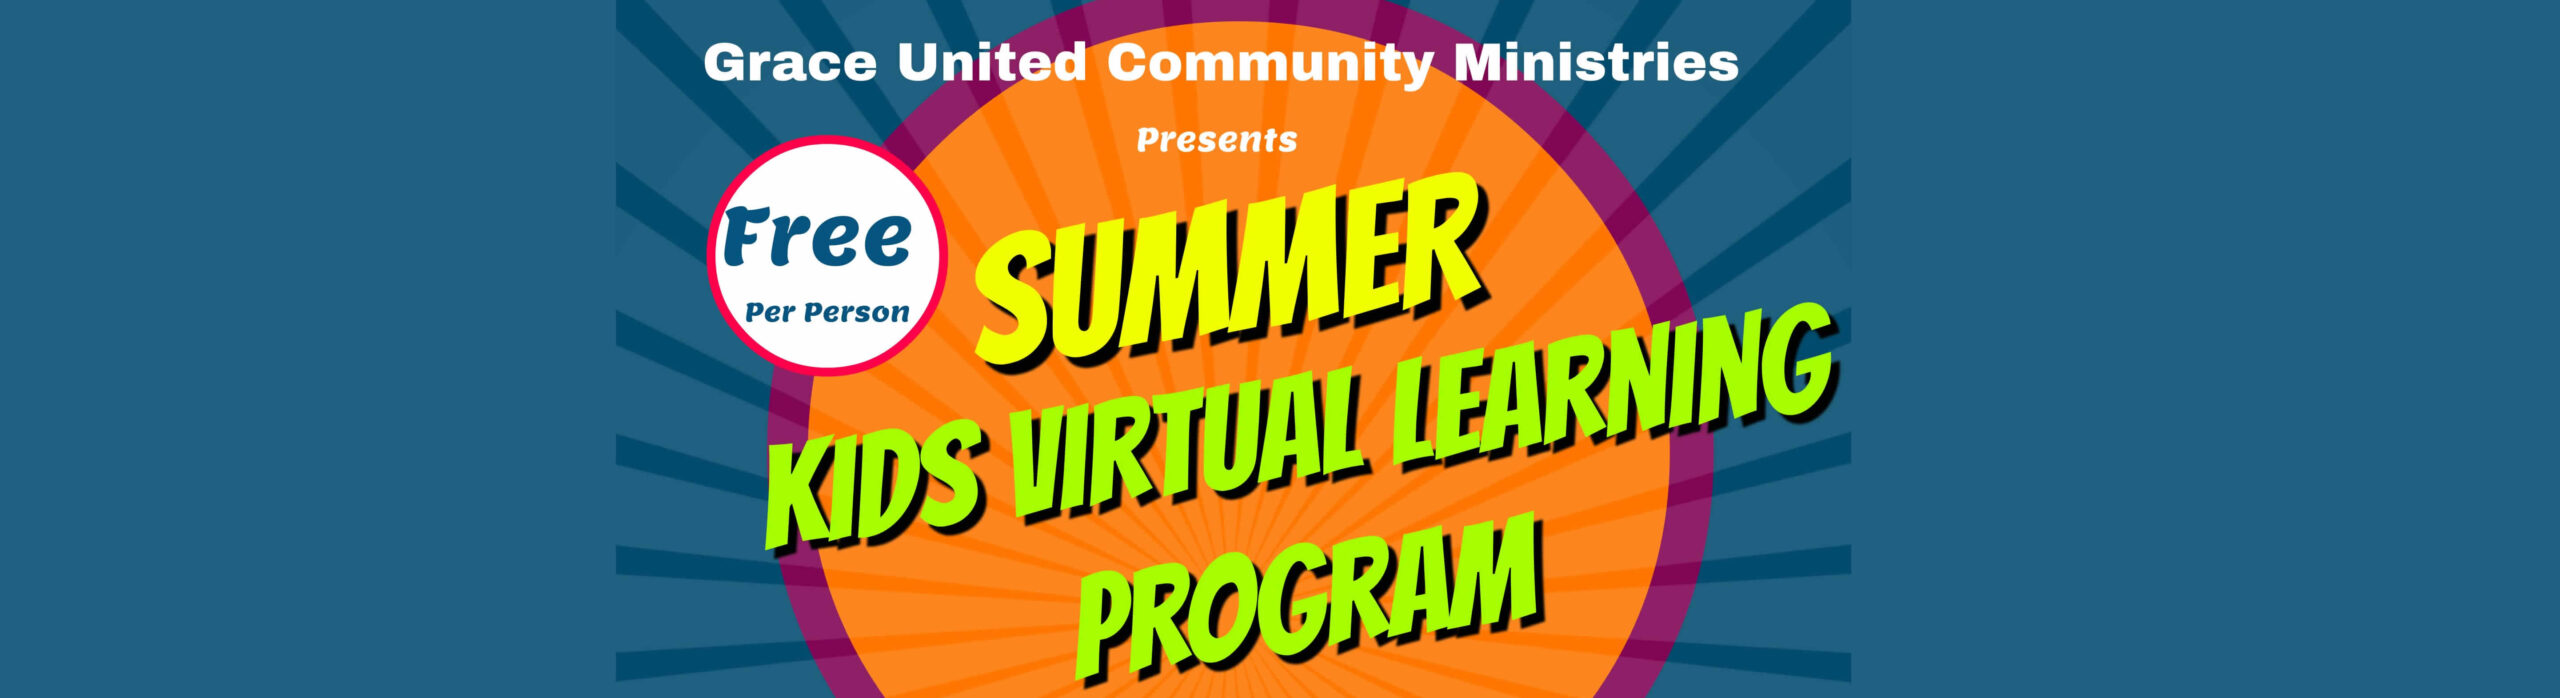 Kids Summer Camp Flyer 2020 banner